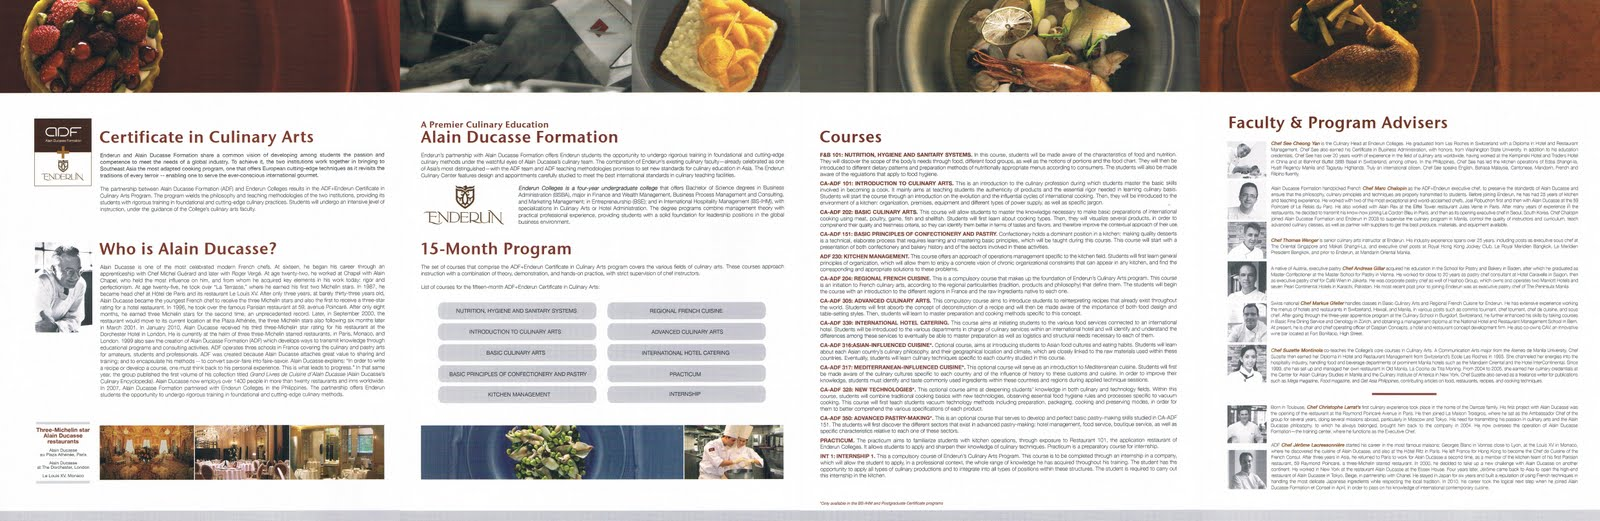 Enderun discover cuisine adfenderuns intensive 15 month certificate in culinary arts program brochure 1betcityfo Images